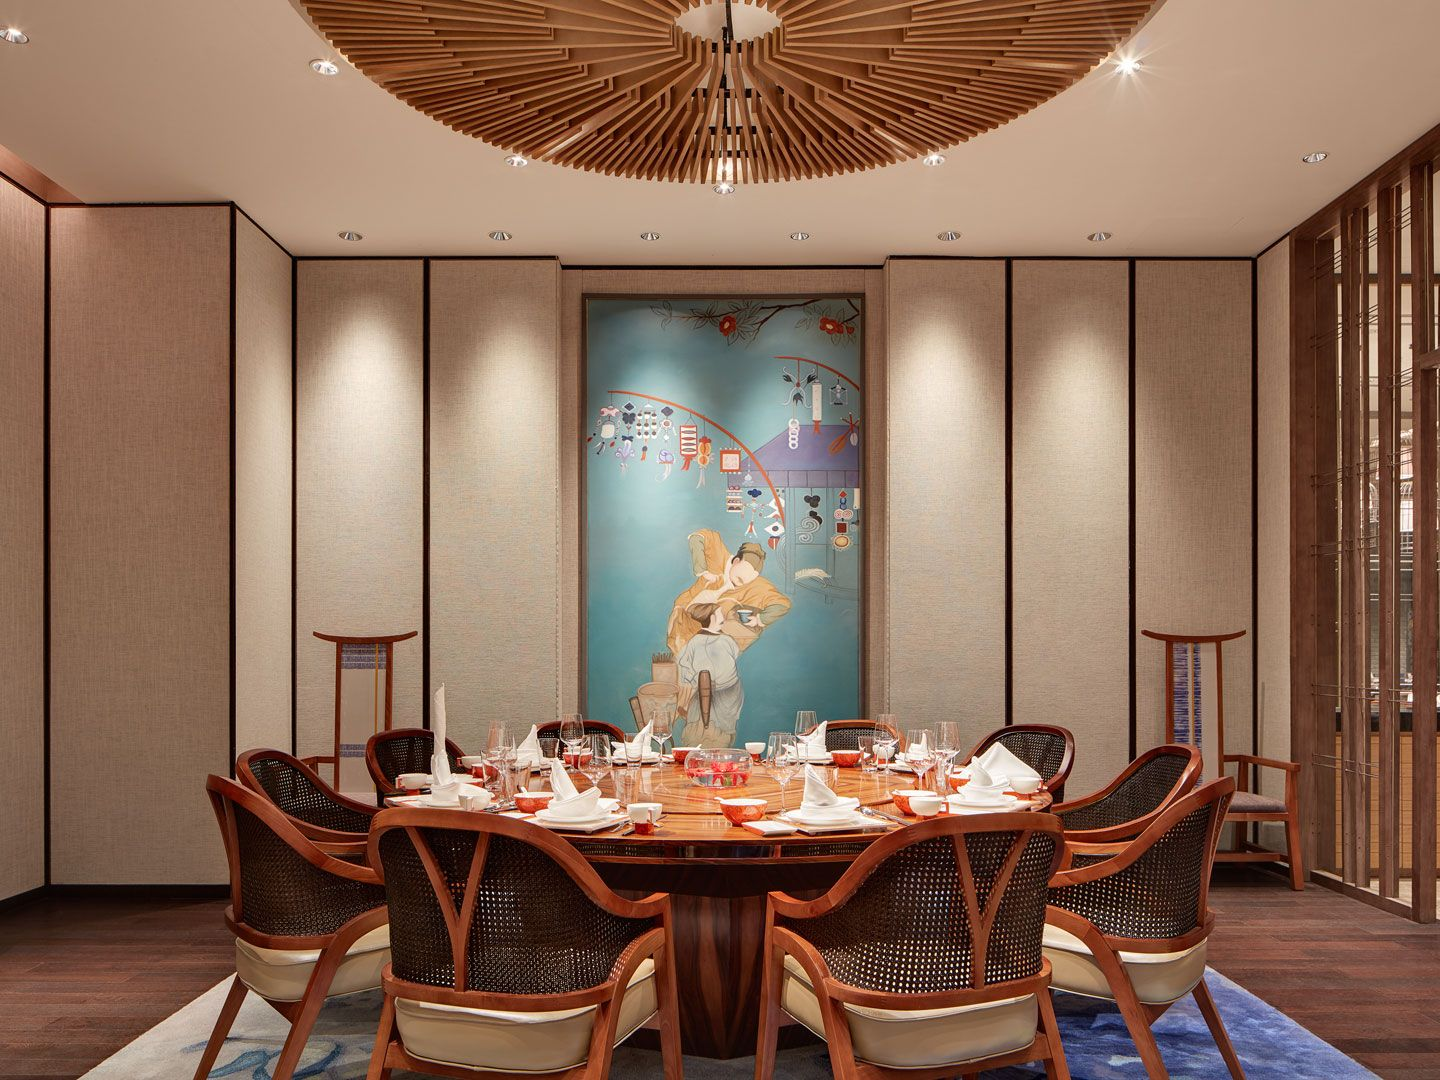 Chinese dining room decor